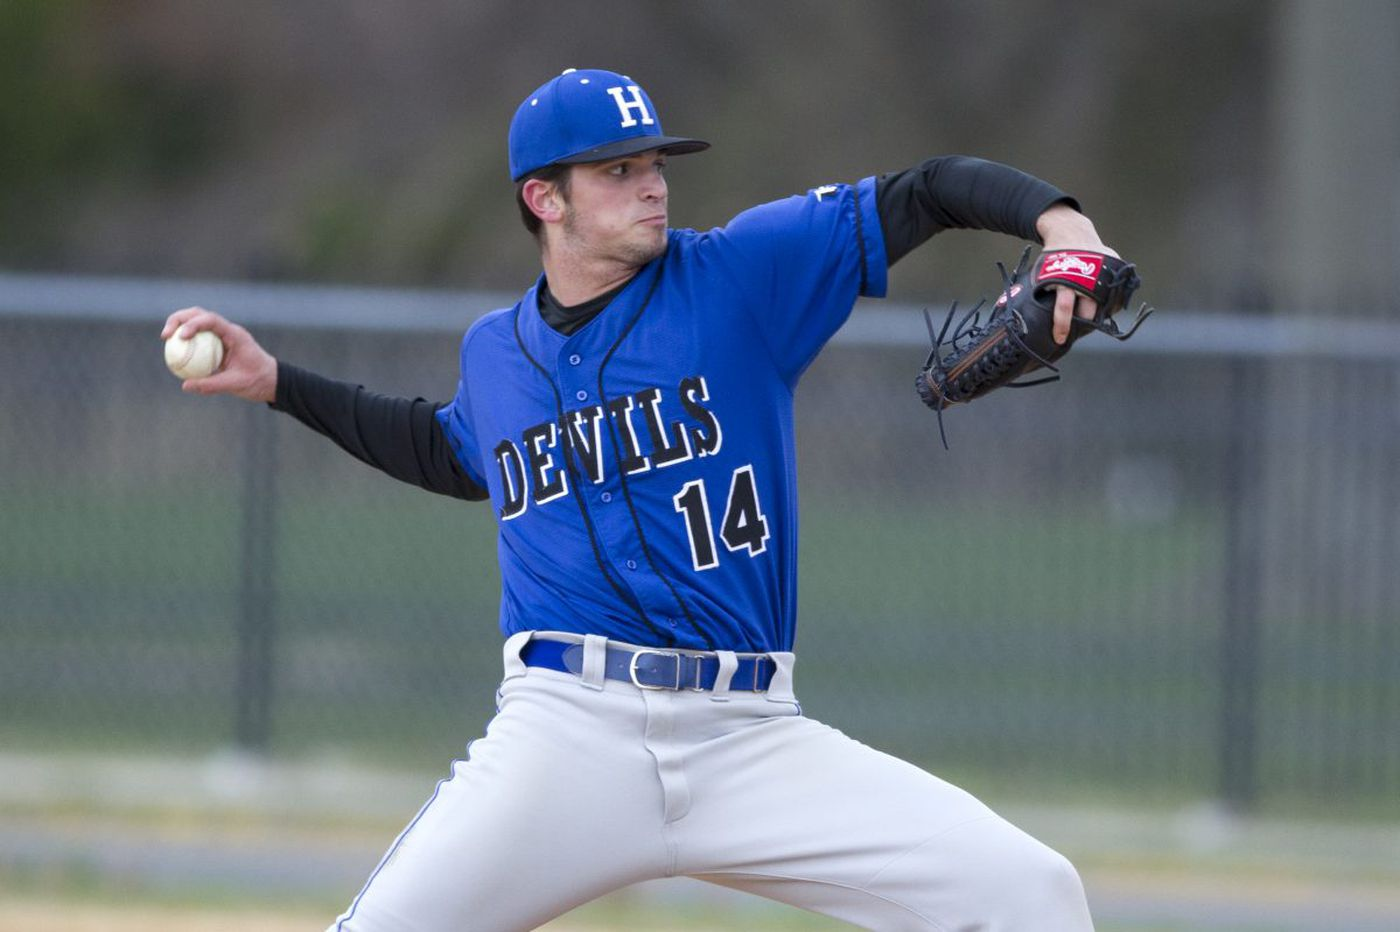 Tuesday's S.J. roundup: Steve Restuccios' gem leads Hammonton over Pennsville